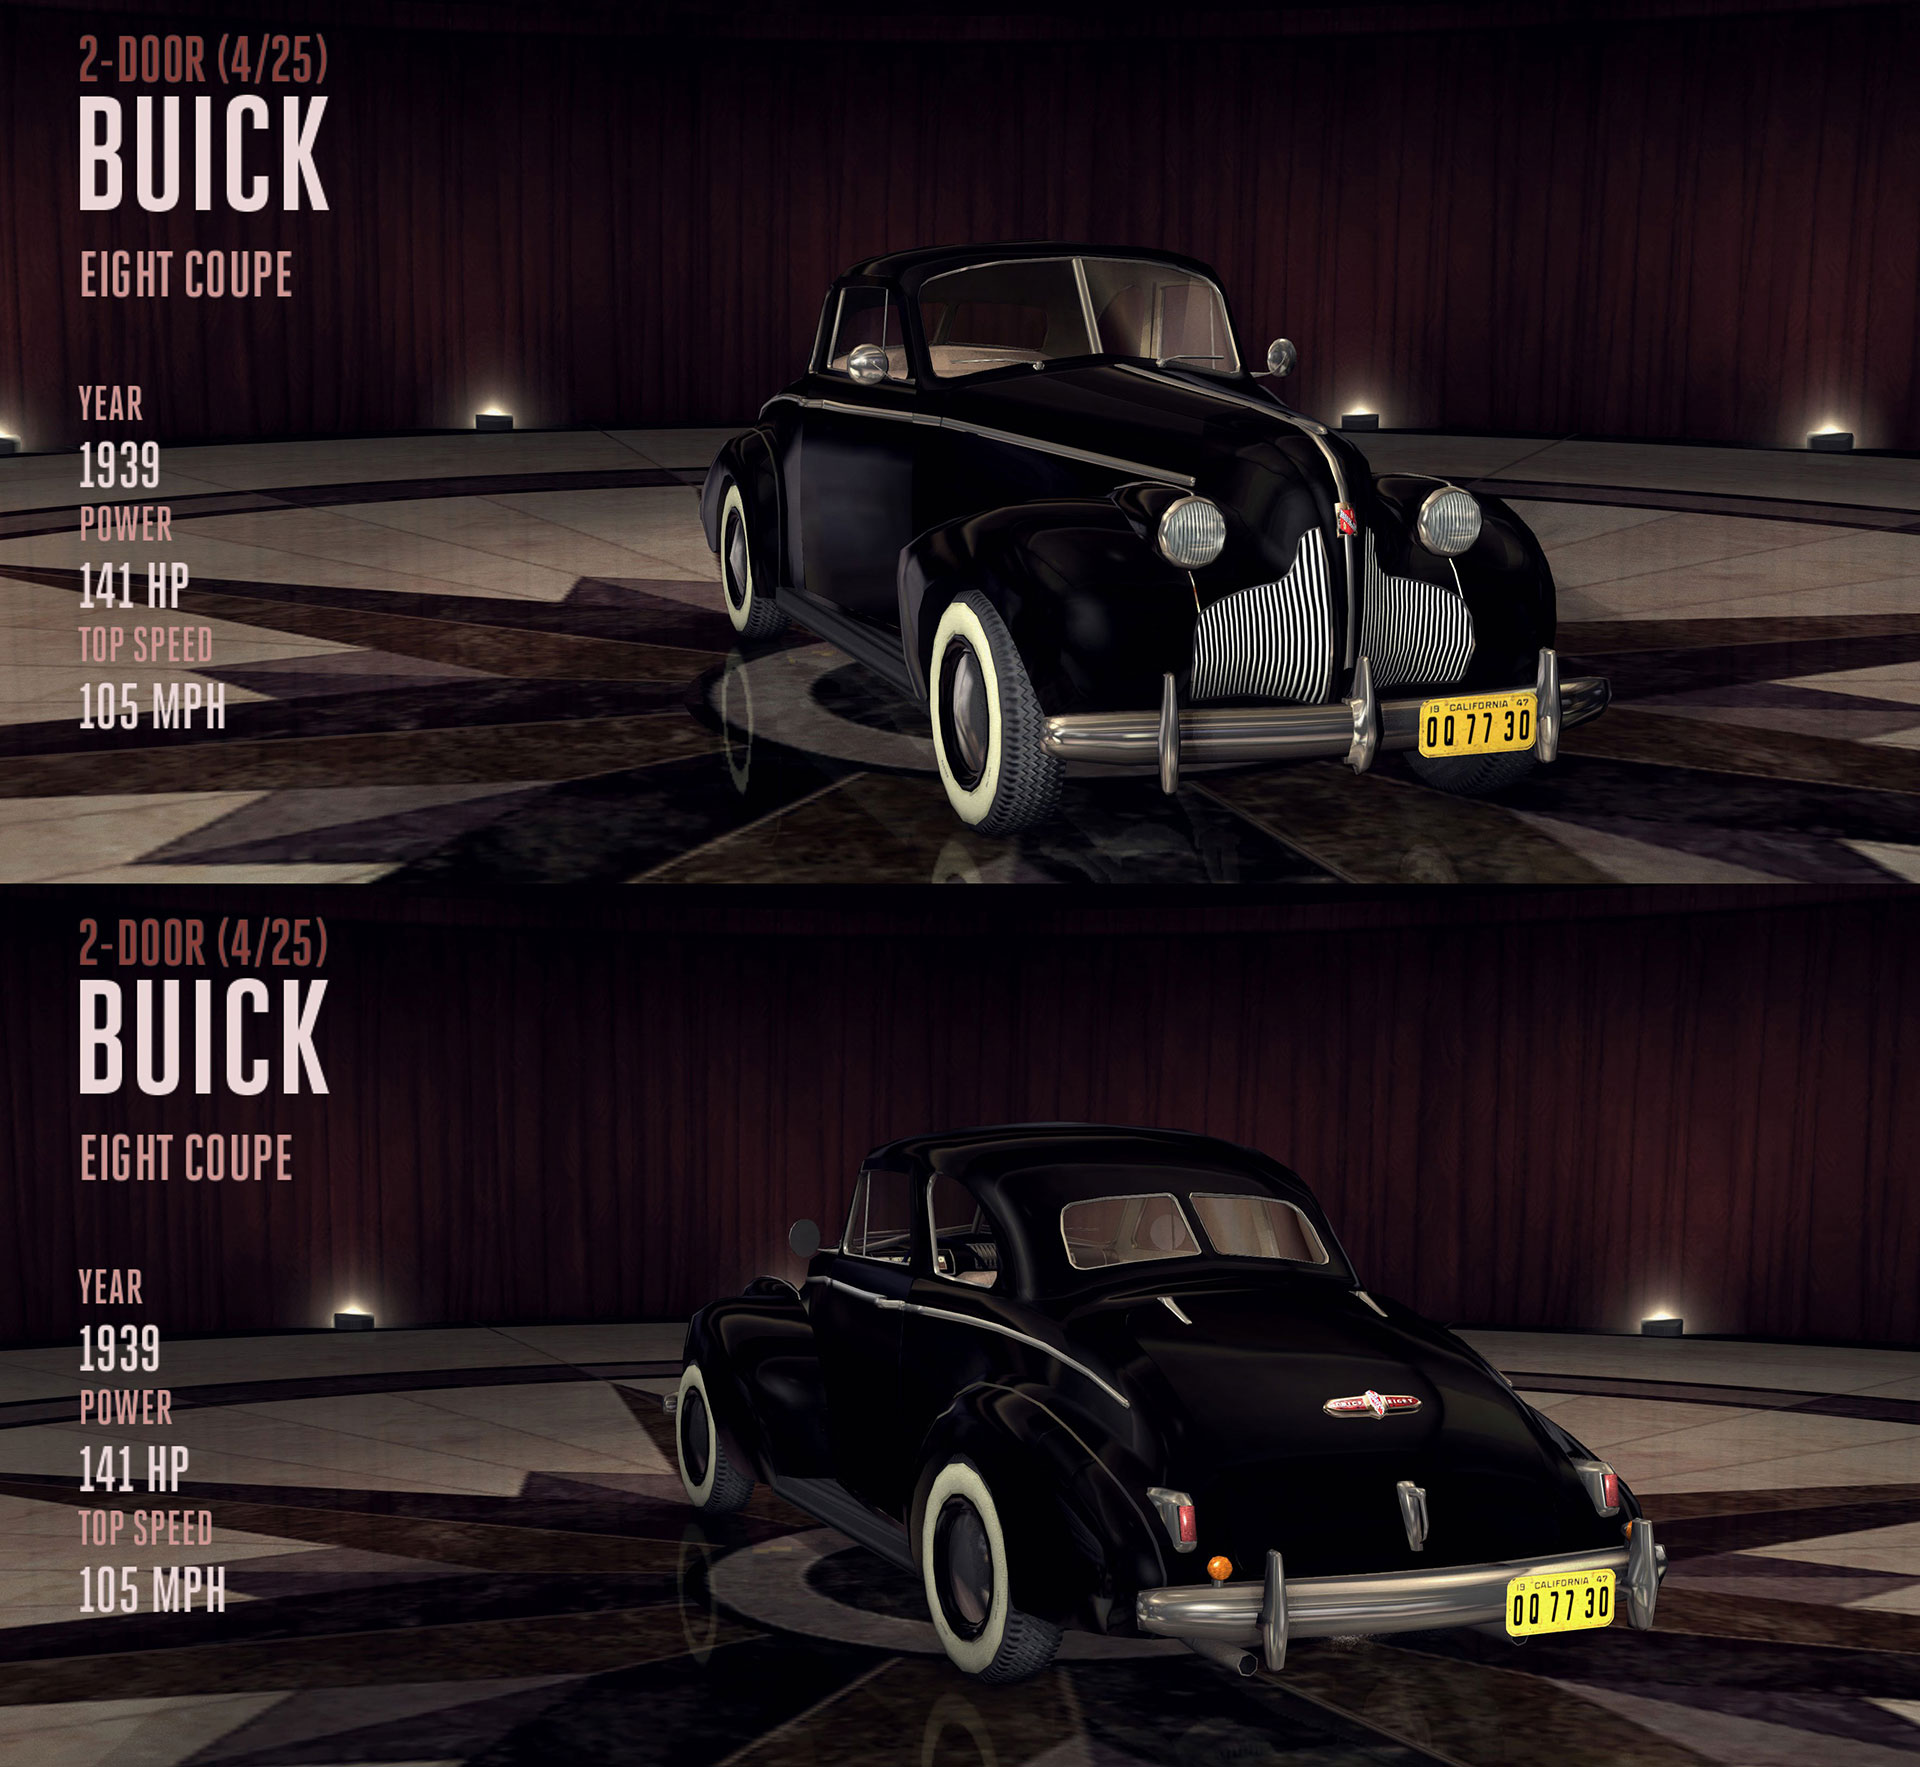 Buick Eight Coupe